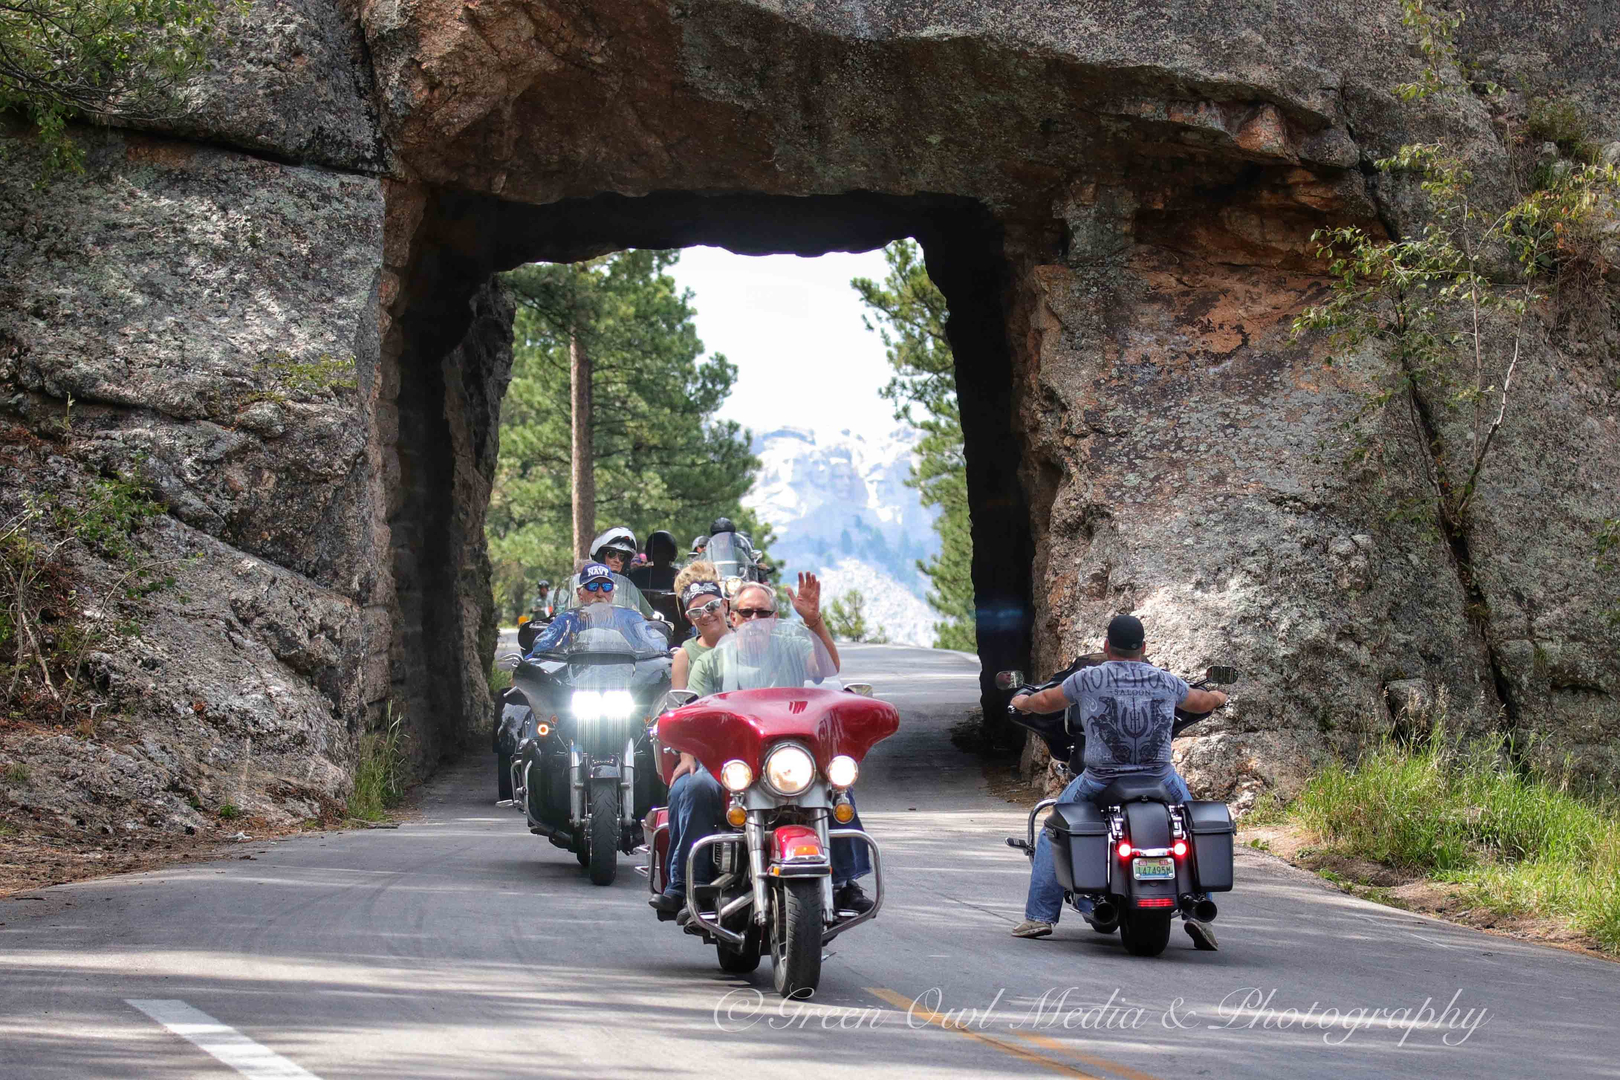 Iron Mt Road - Mt Rushmore and Crazy Horse Monument photo #1